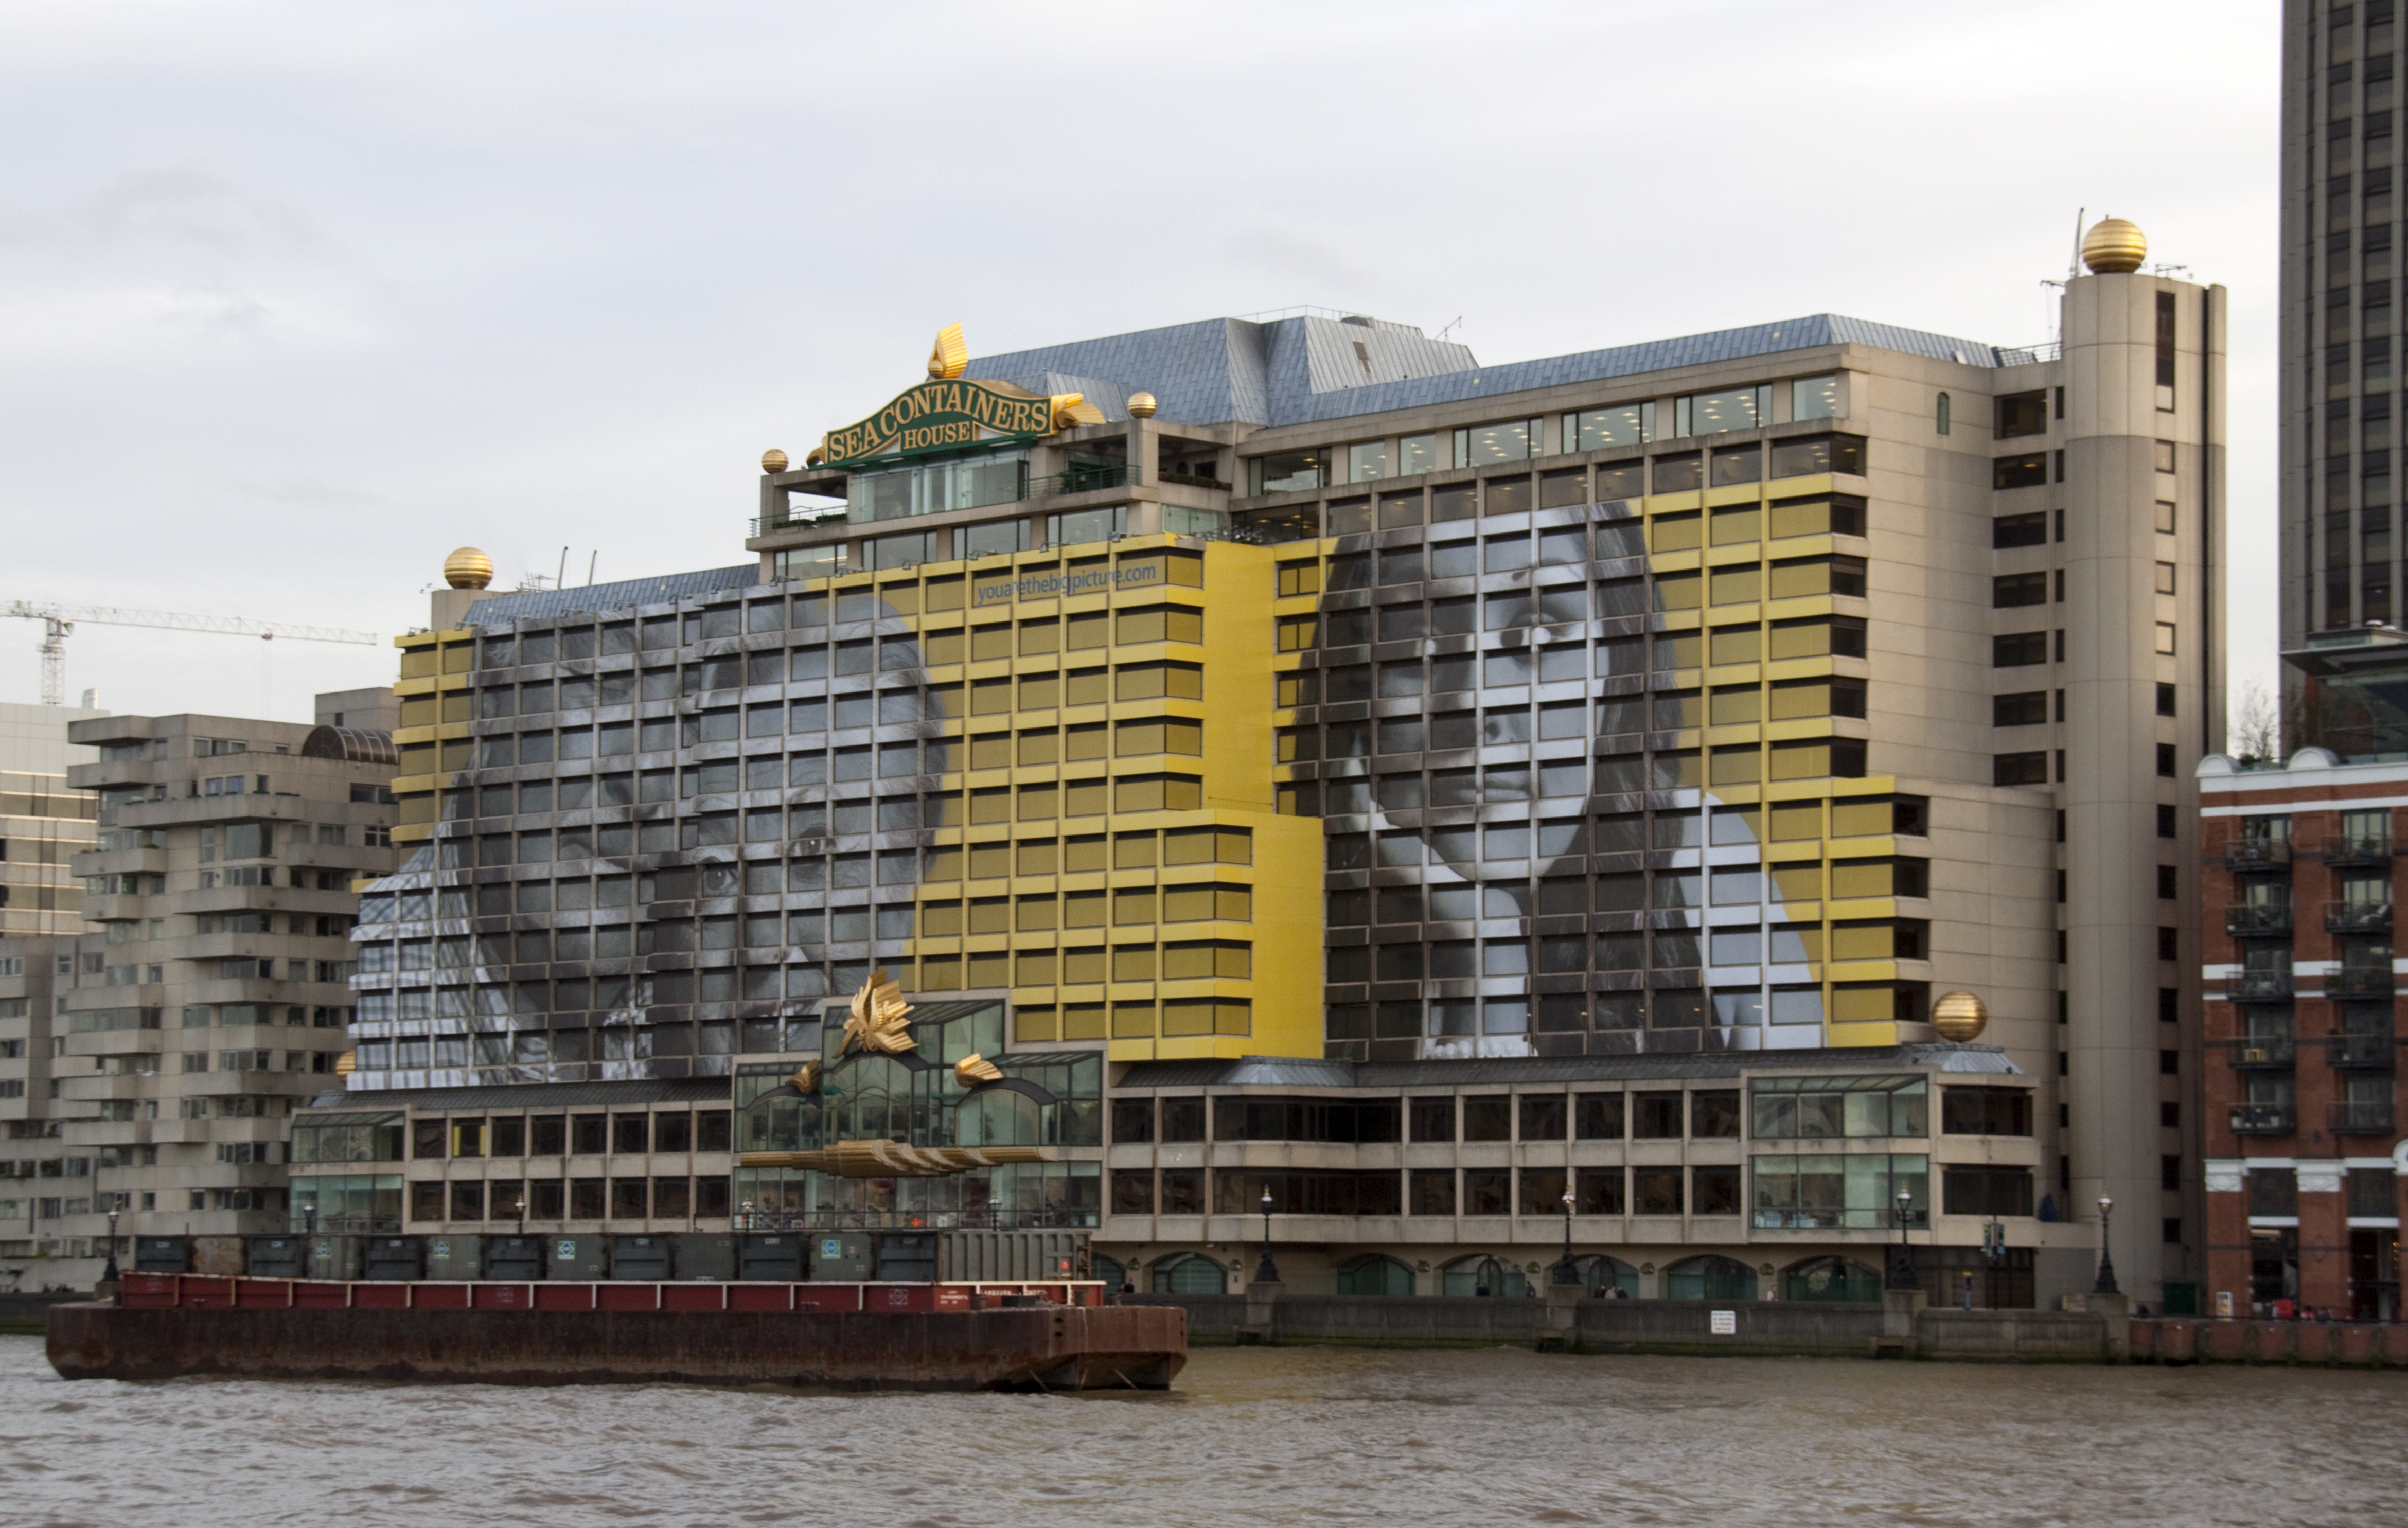 File:Sea Containers House.jpg - Wikimedia Commons